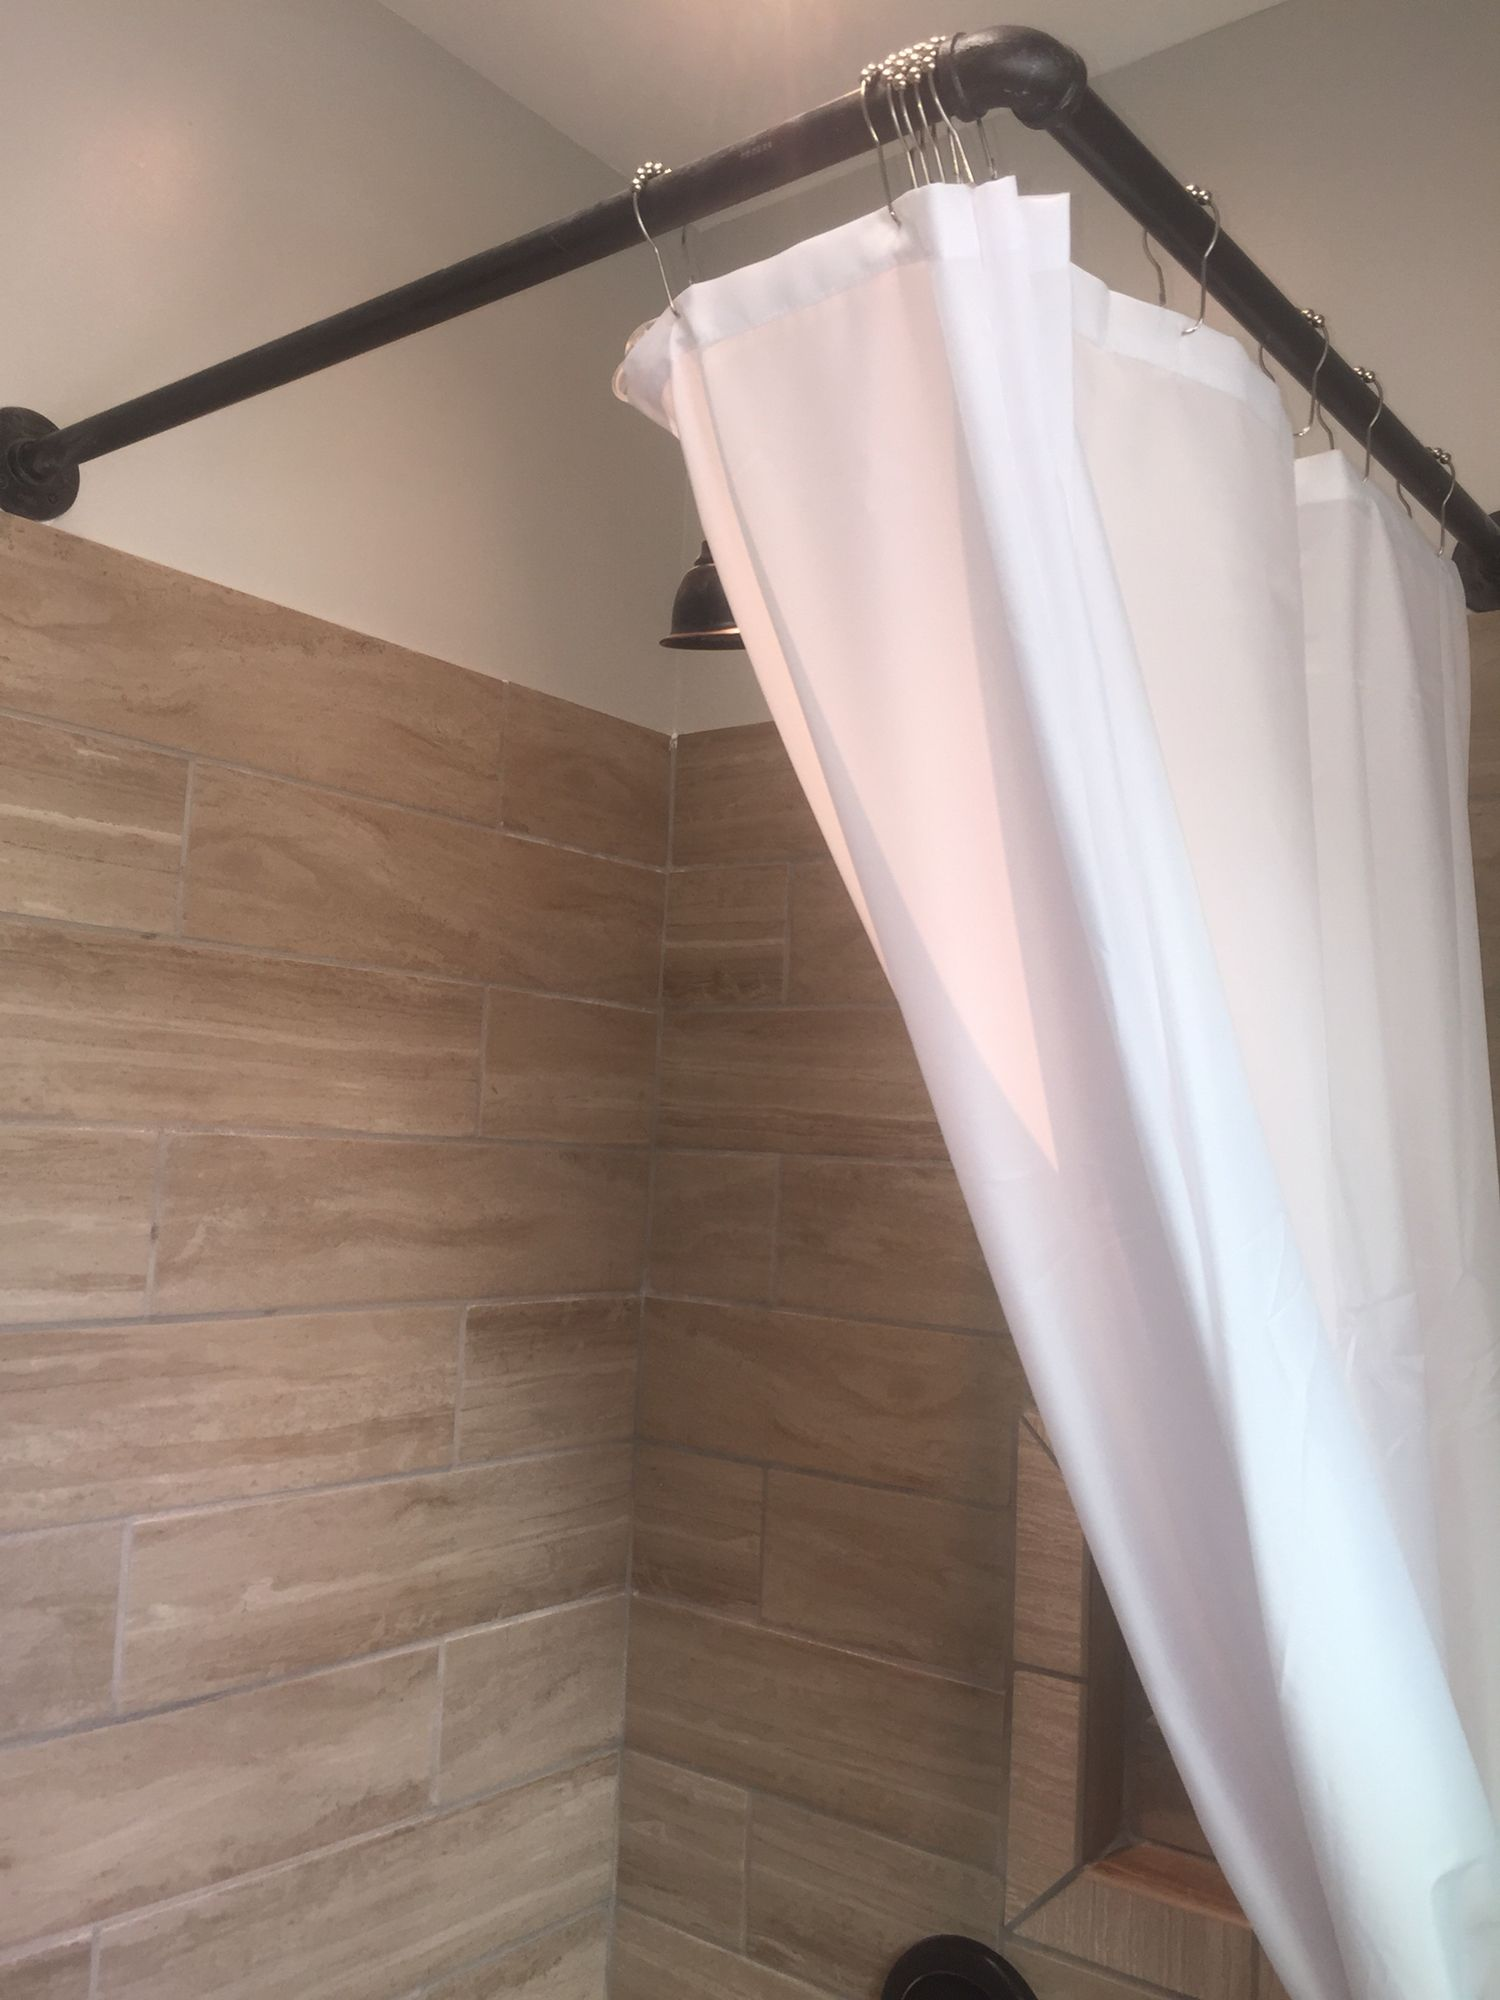 Diy Shower Curtain Rod Our Lake House Remodel On Lake